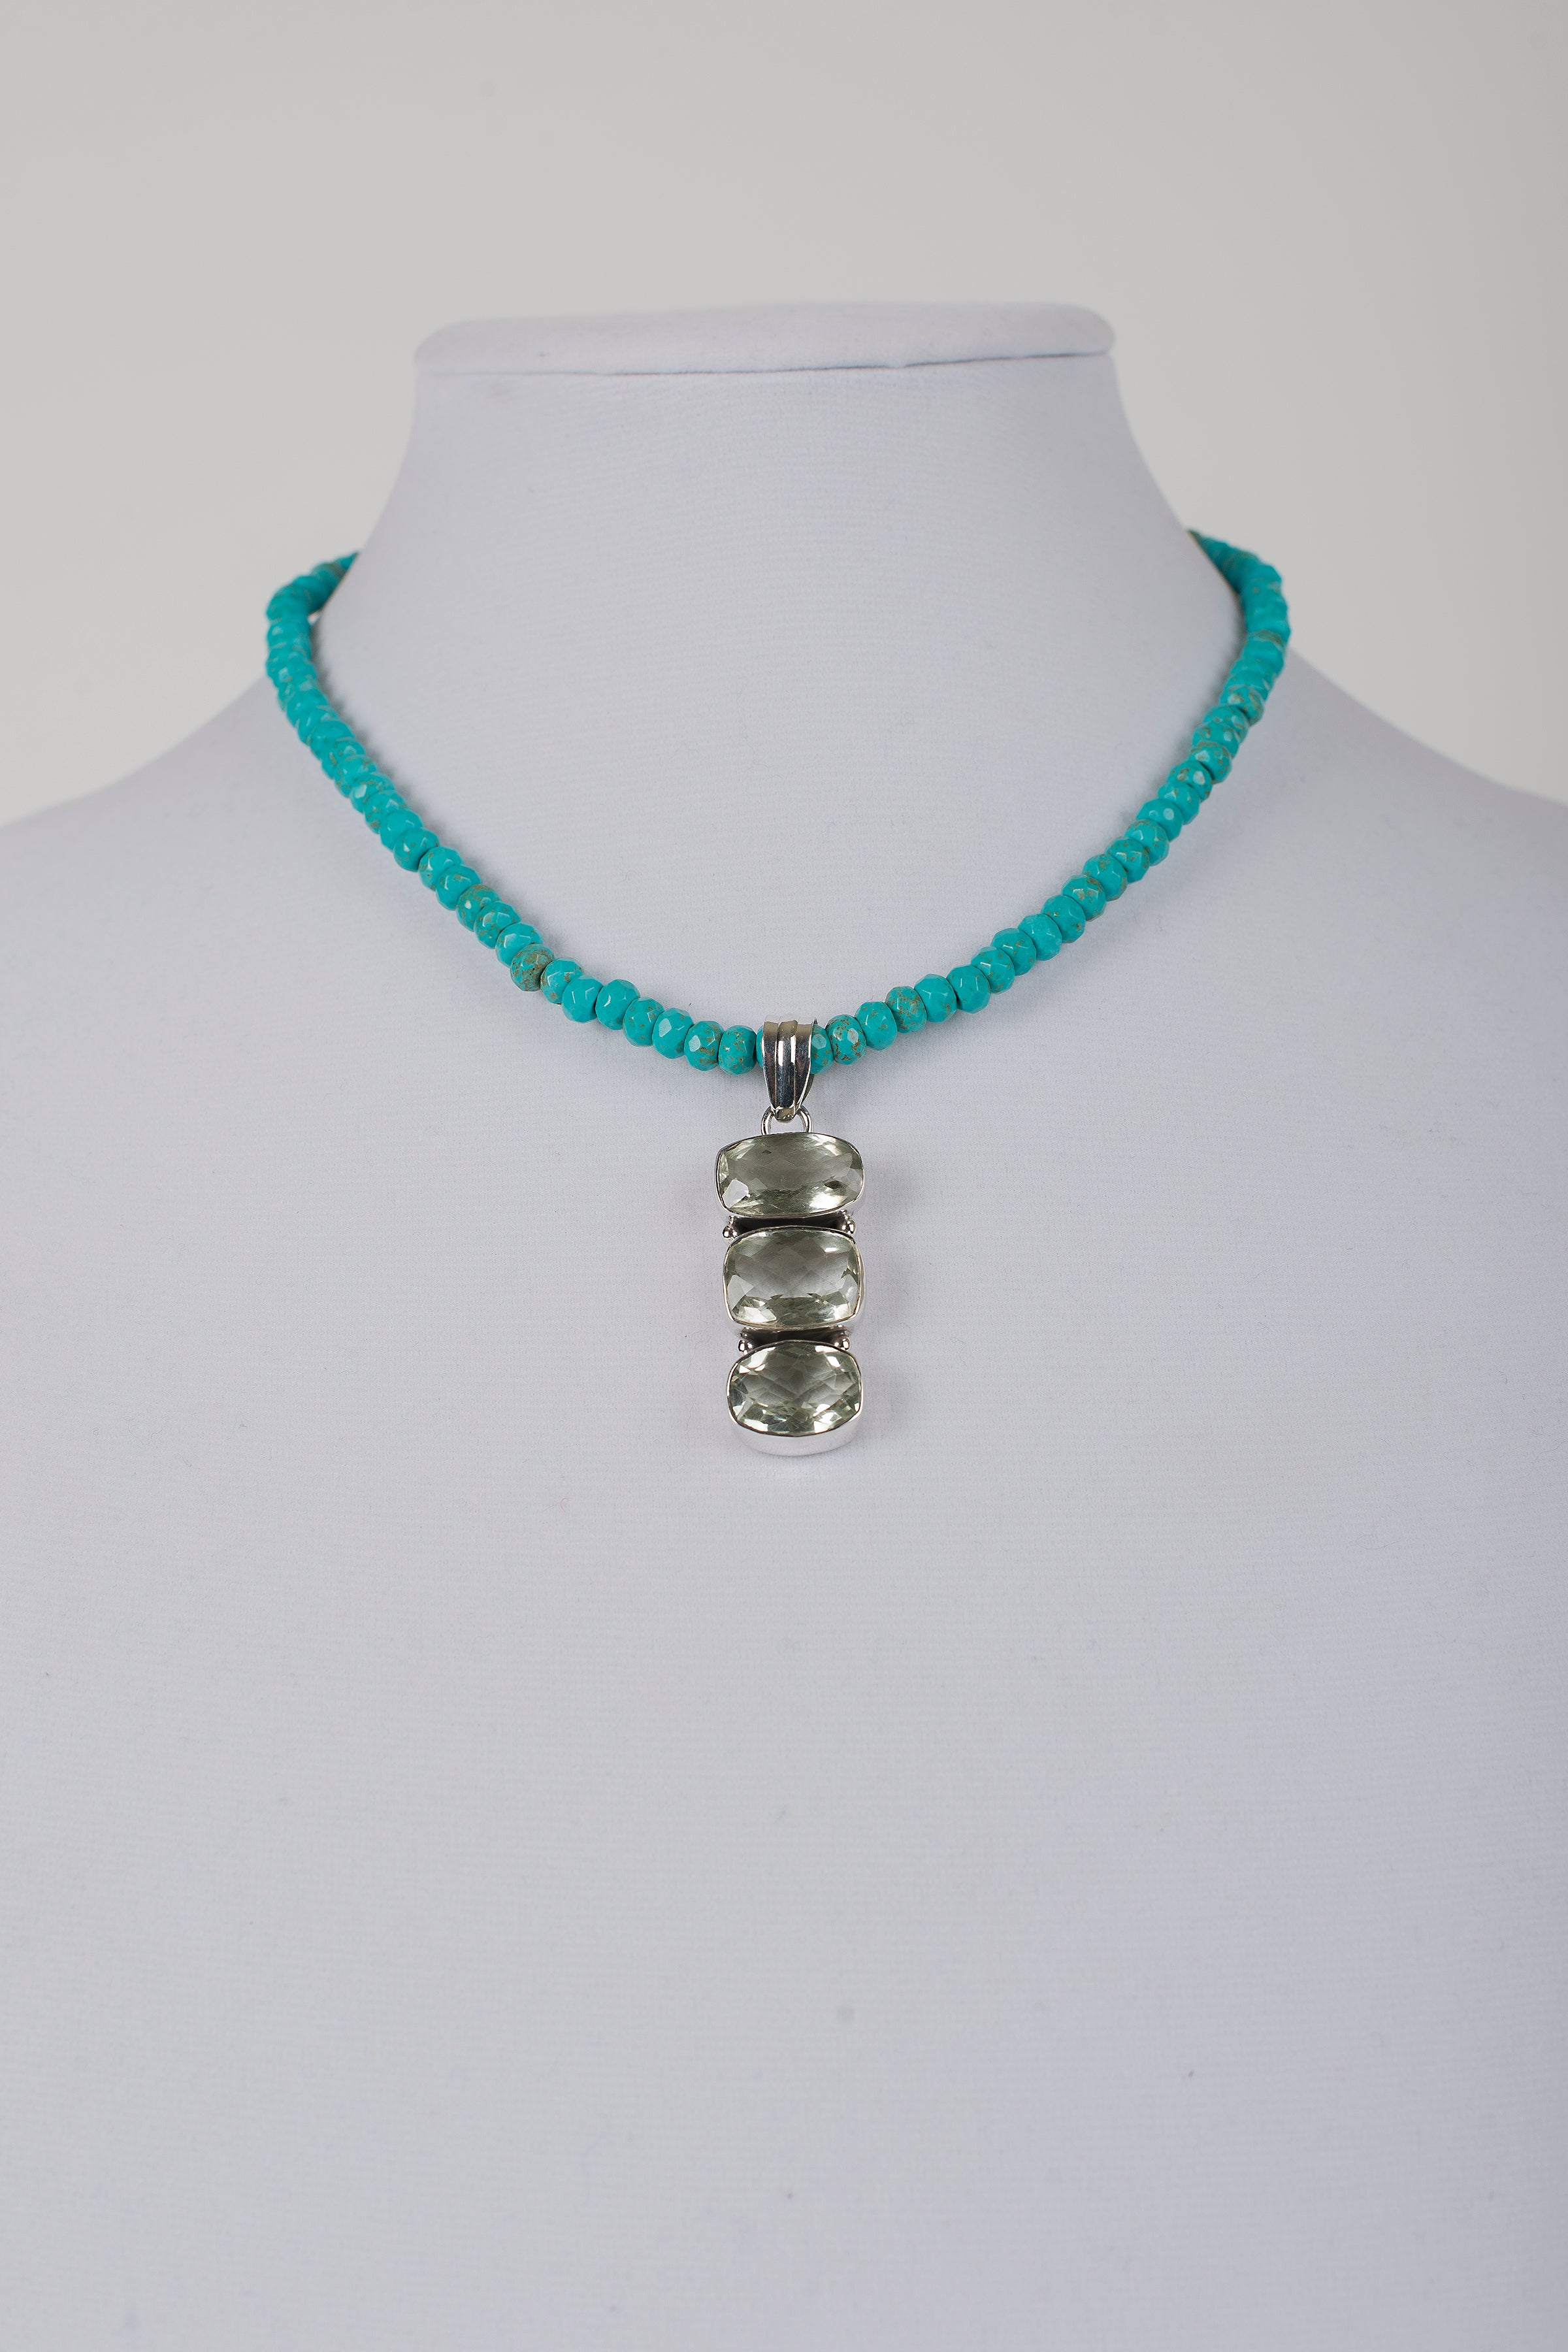 Faceted Turquoise Rondelle with Green Amethyst Pendant